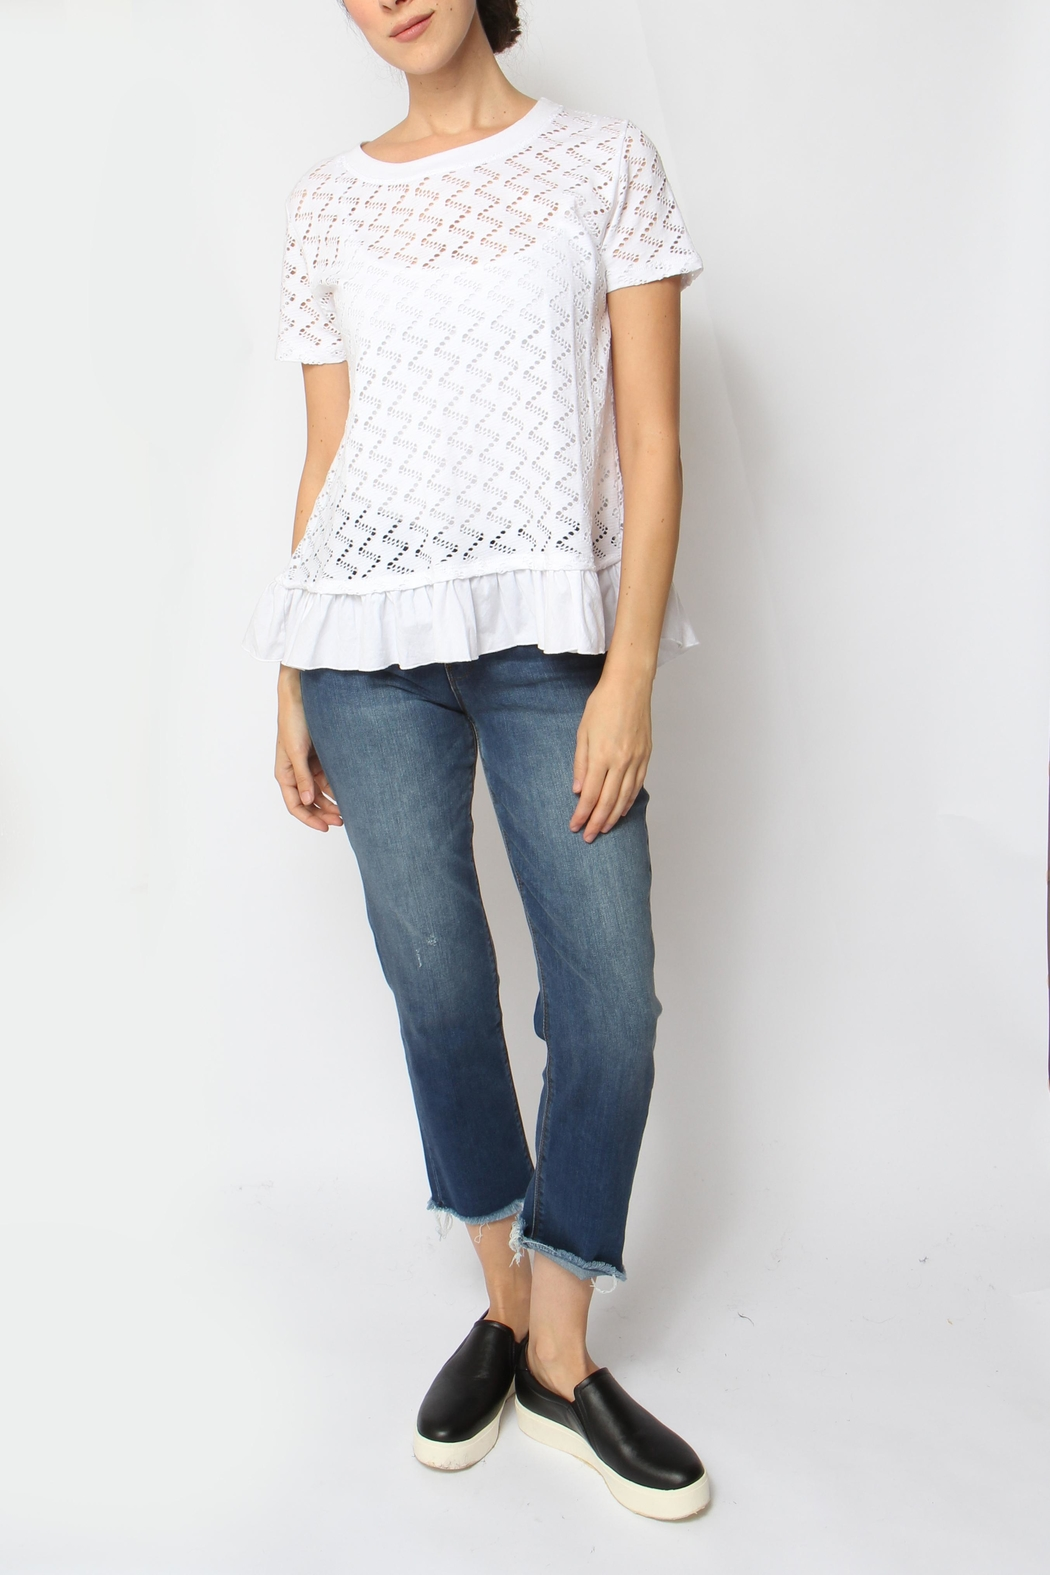 Coin 1804 Ruffle Trim Top - Front Full Image